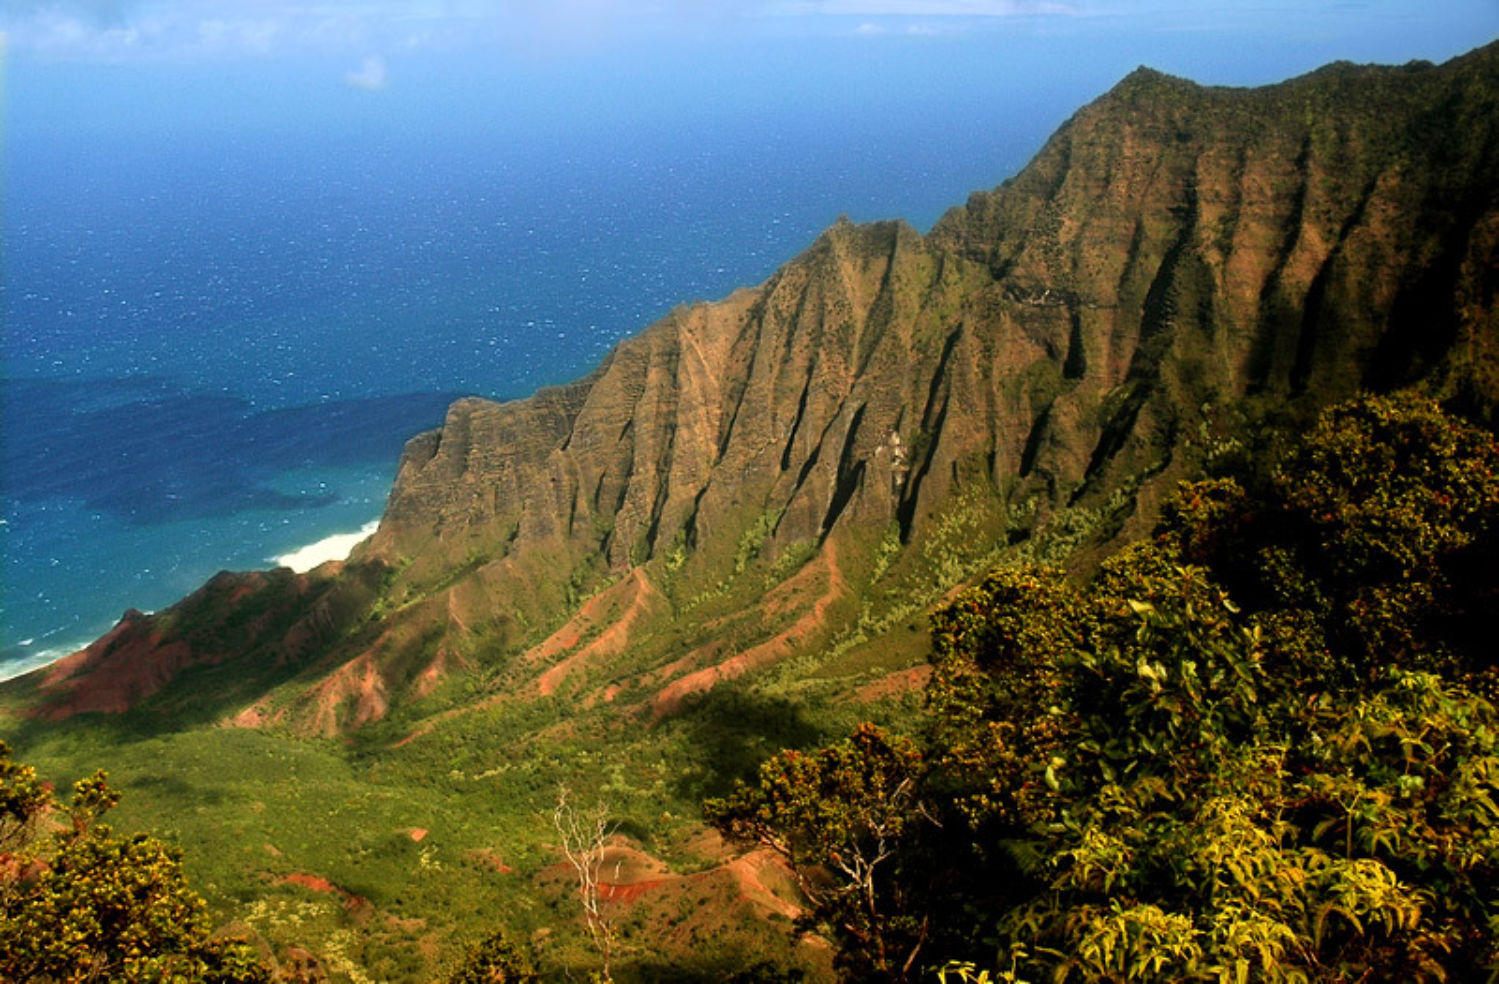 Kalalau Lookout in Kauai